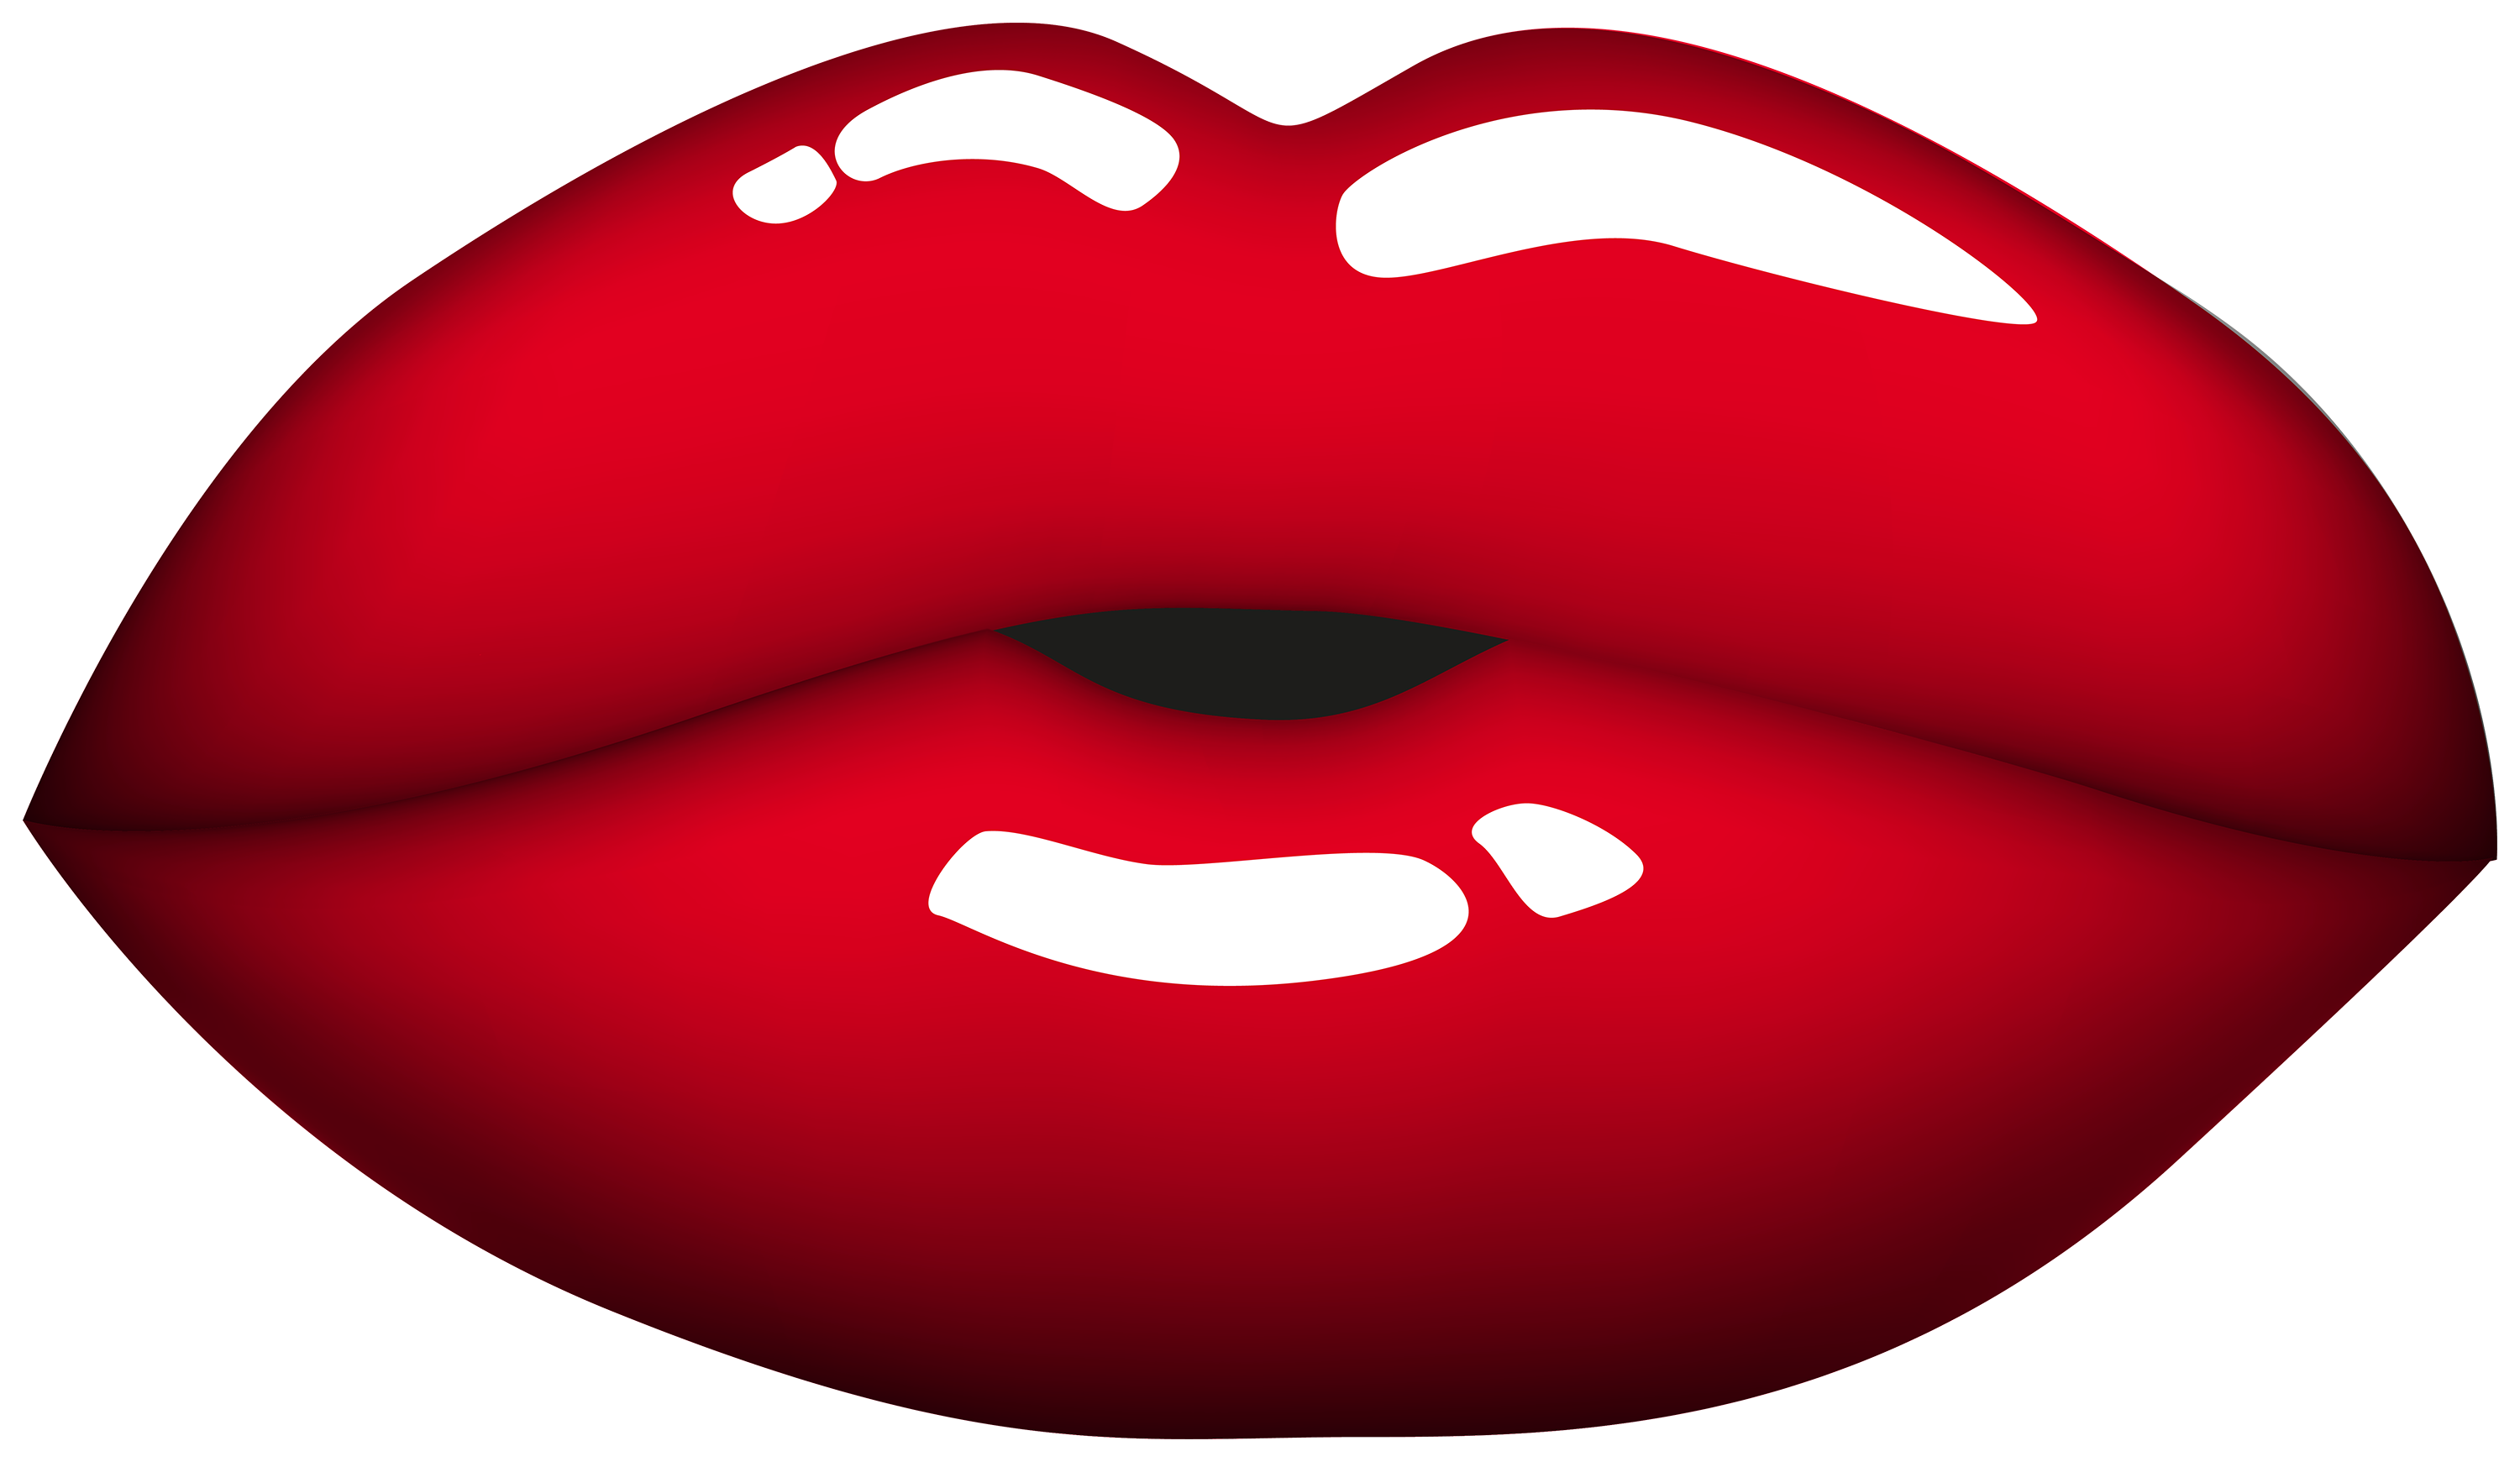 lips clipart at getdrawings com free for personal use lips clipart rh getdrawings com lip clipart images lip clip art of ww2 war planes of ww2 w